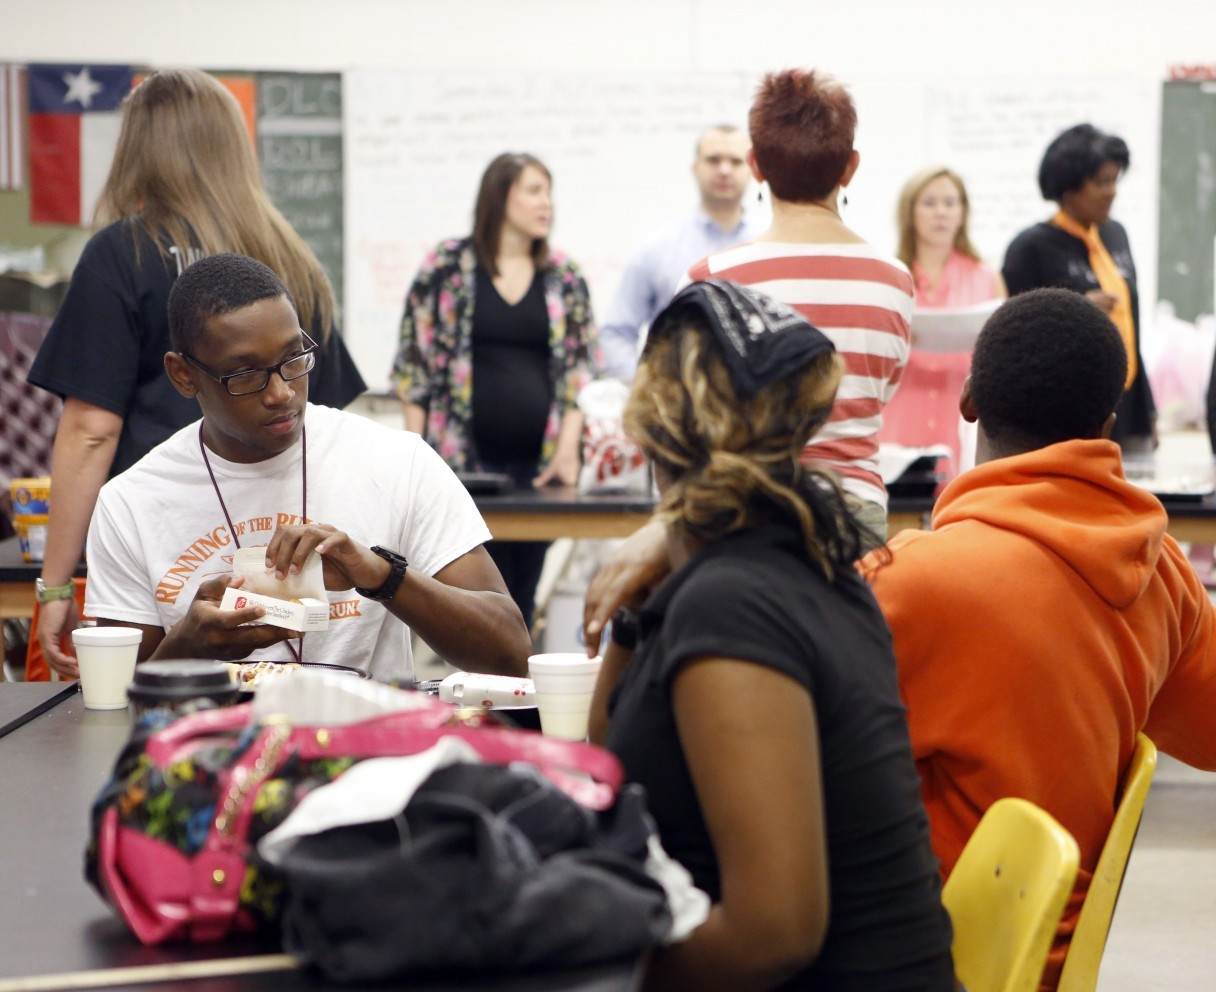 Caption: North Dallas High School students, Credit: Lara Solt